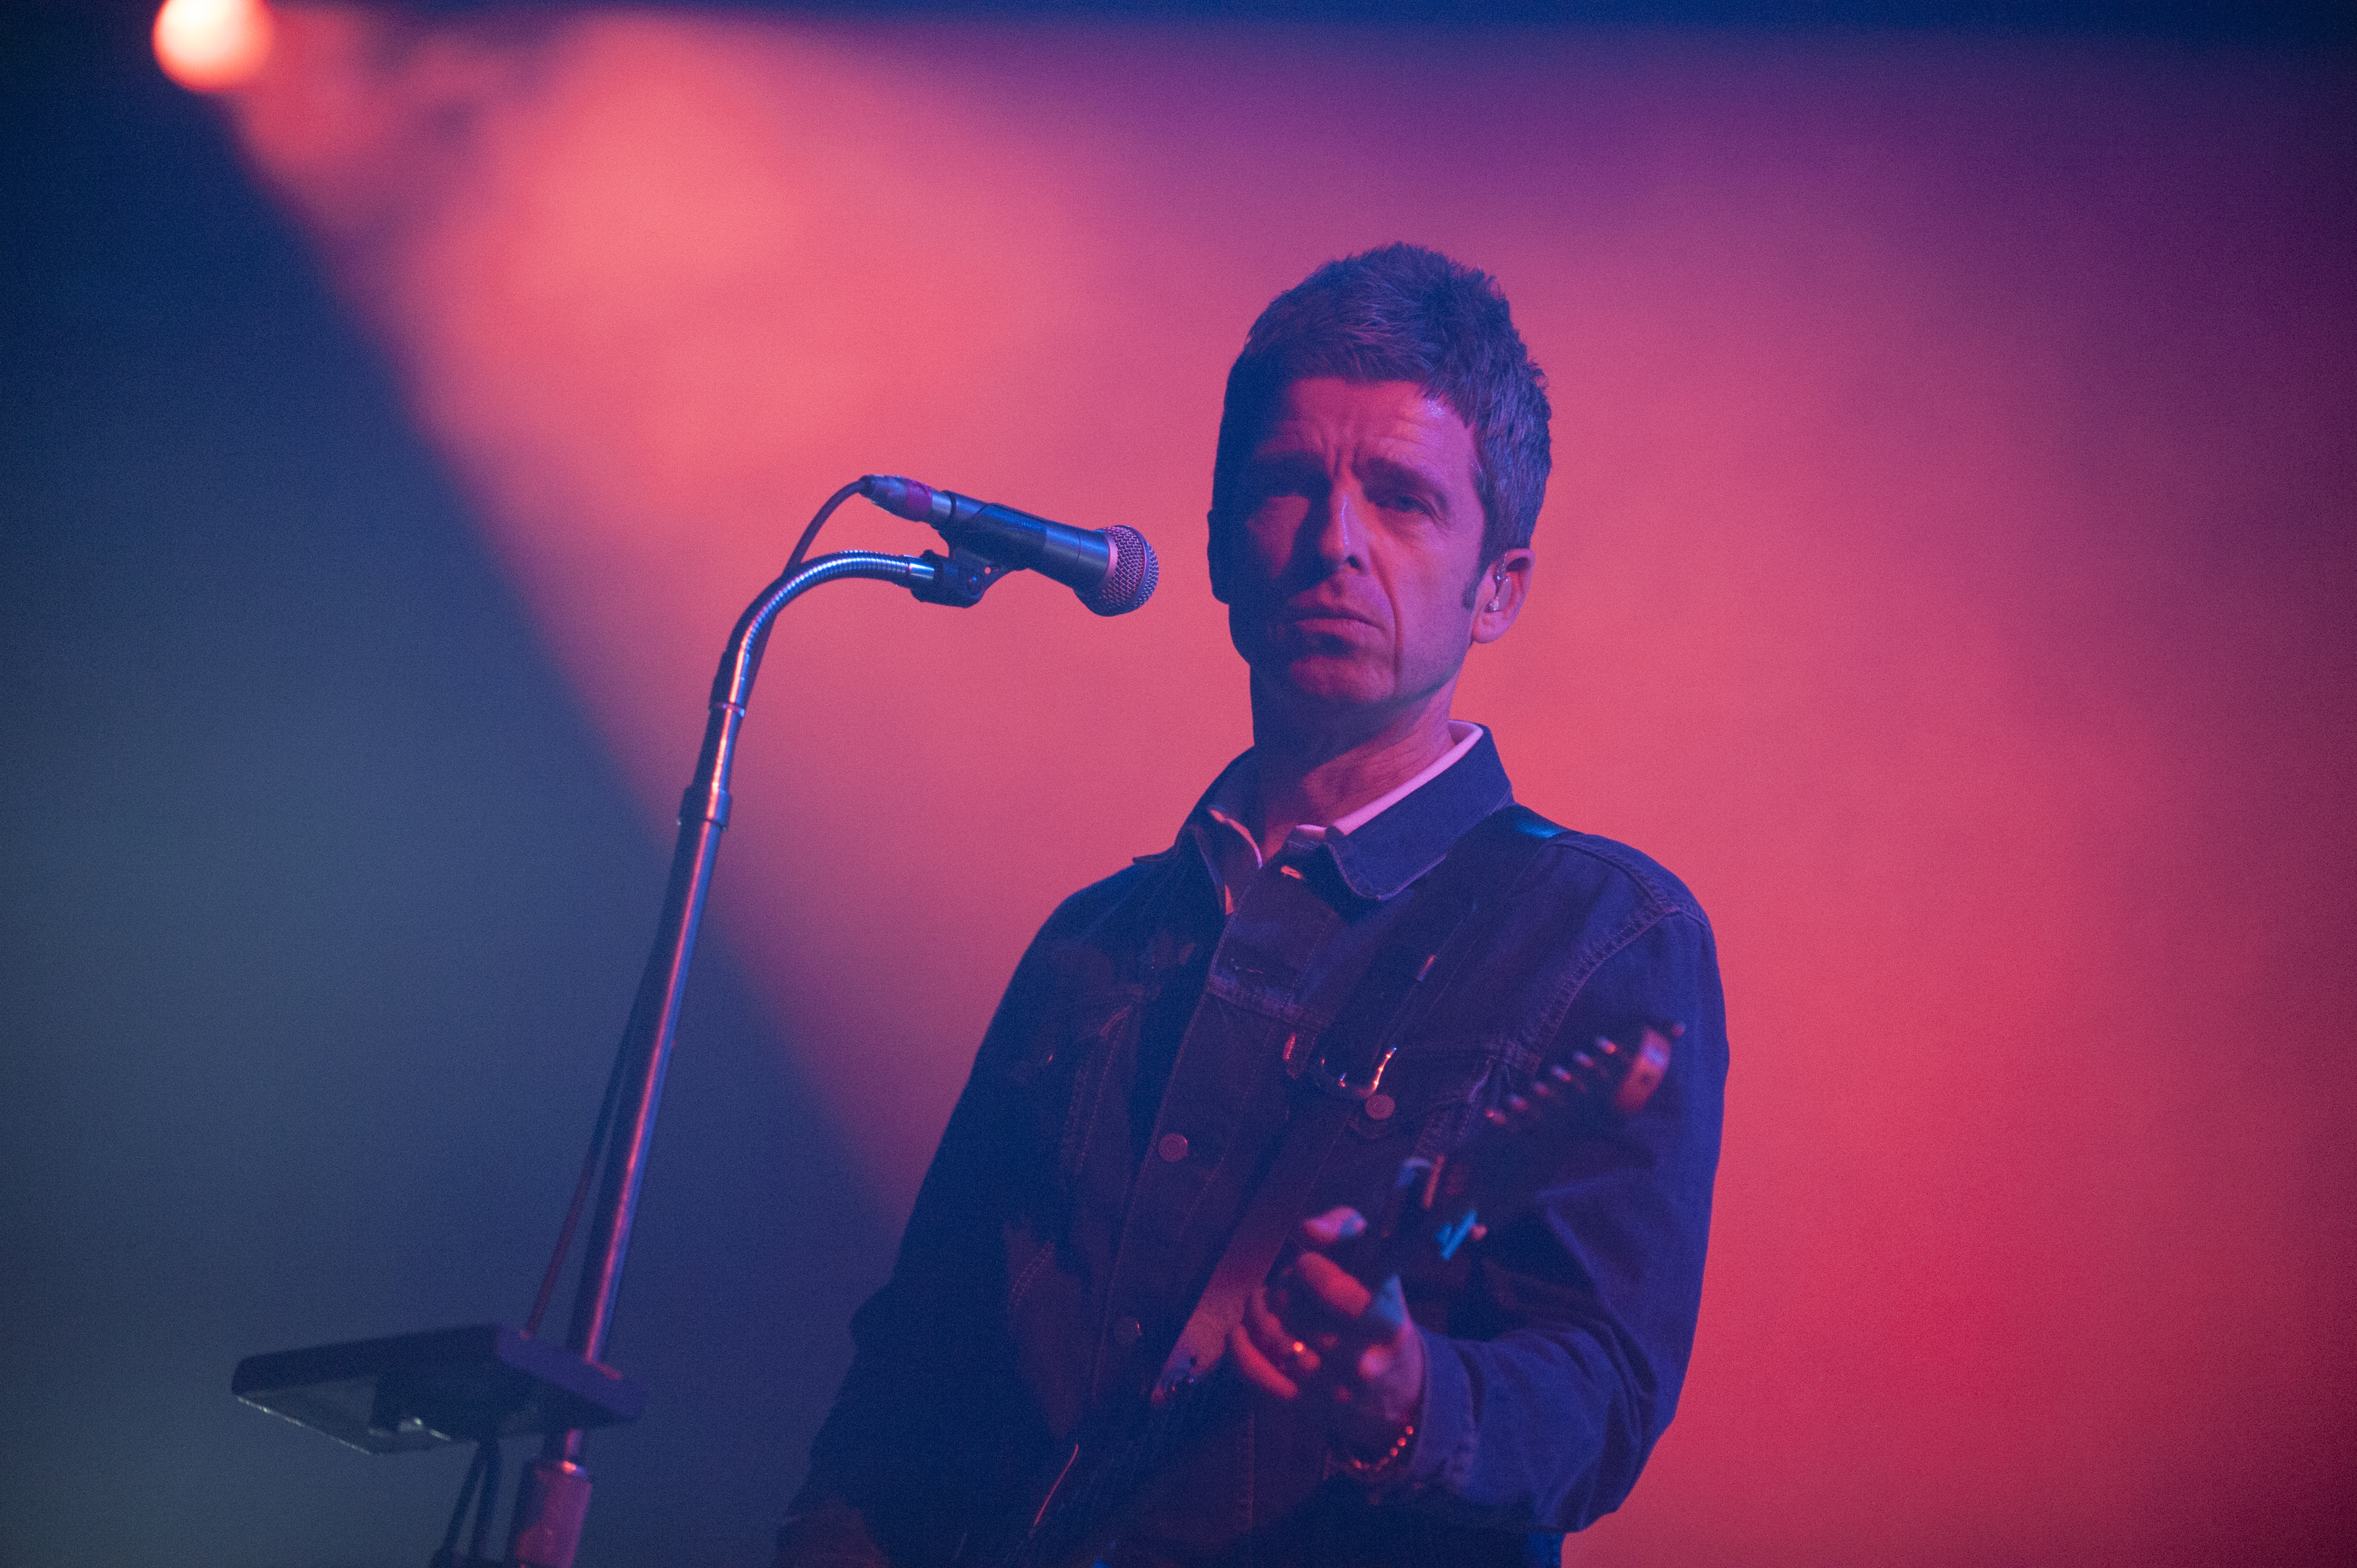 Noel Gallagher. Picture by Andy Thorn.